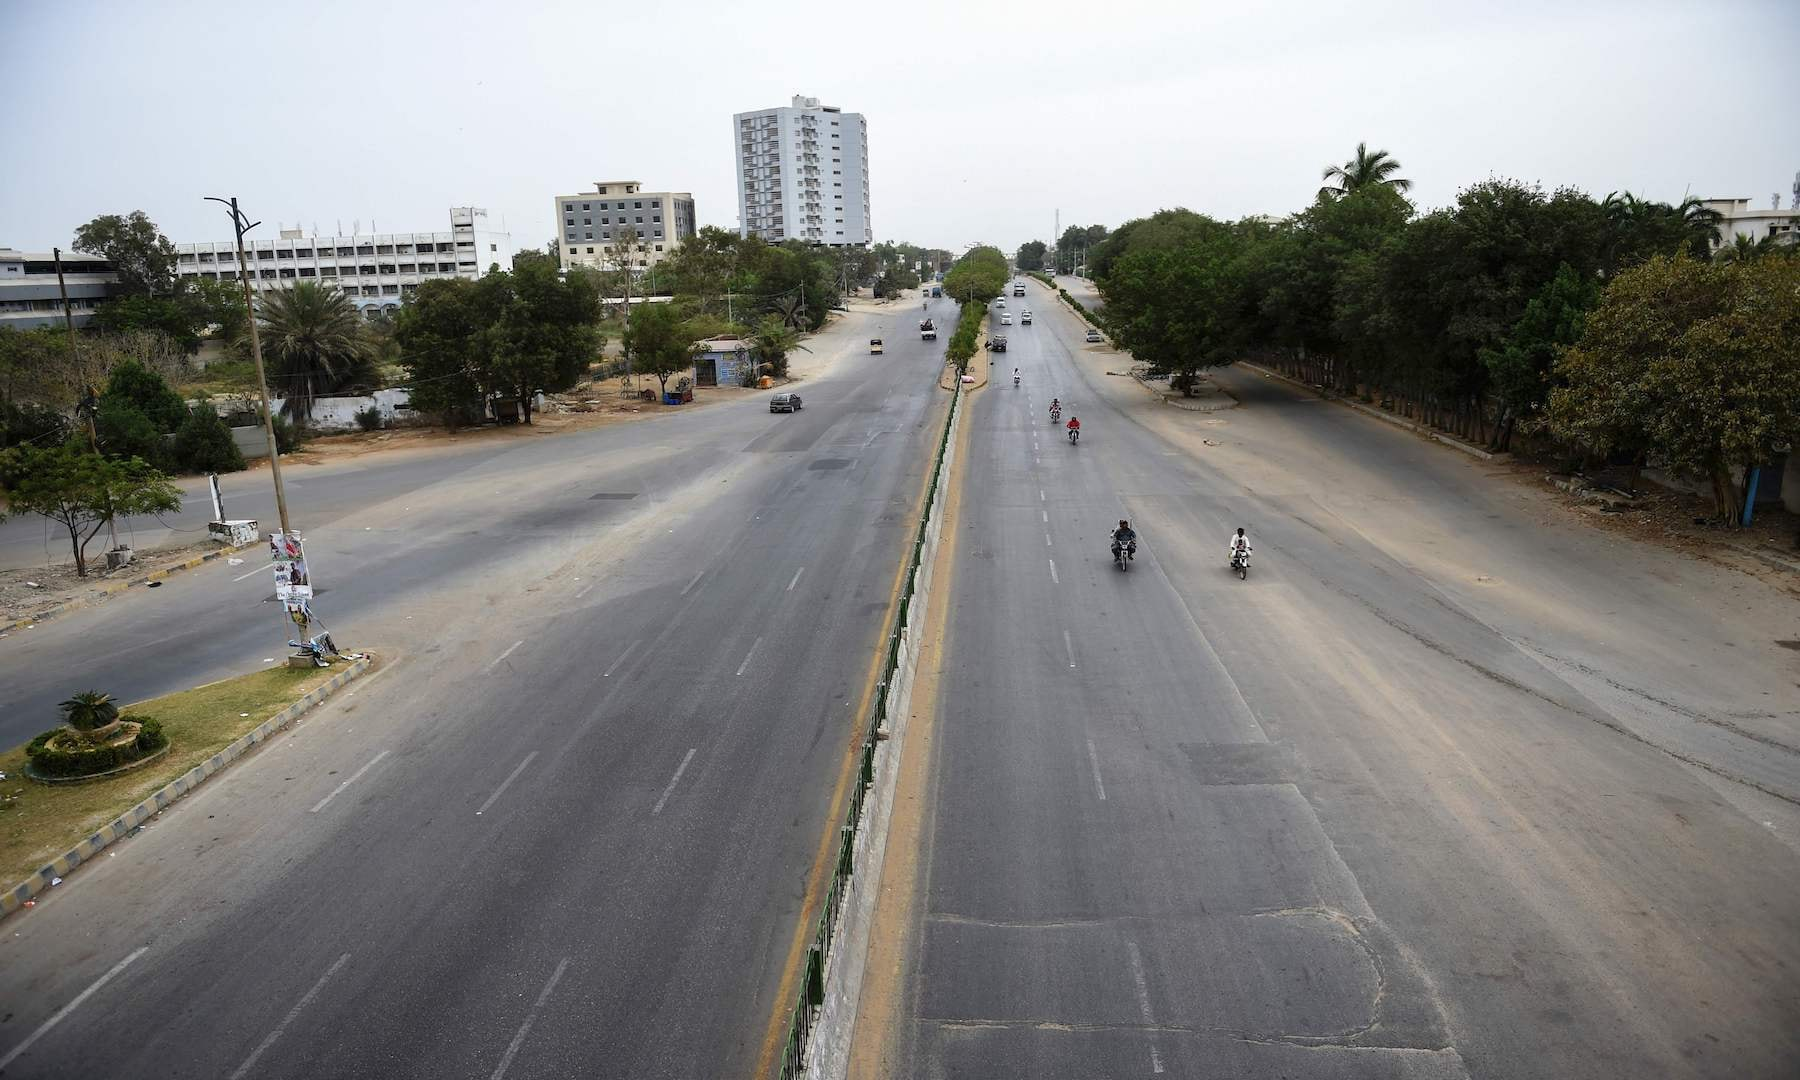 Commuters ride on a deserted road during a lockdown in Karachi in March. — AFP